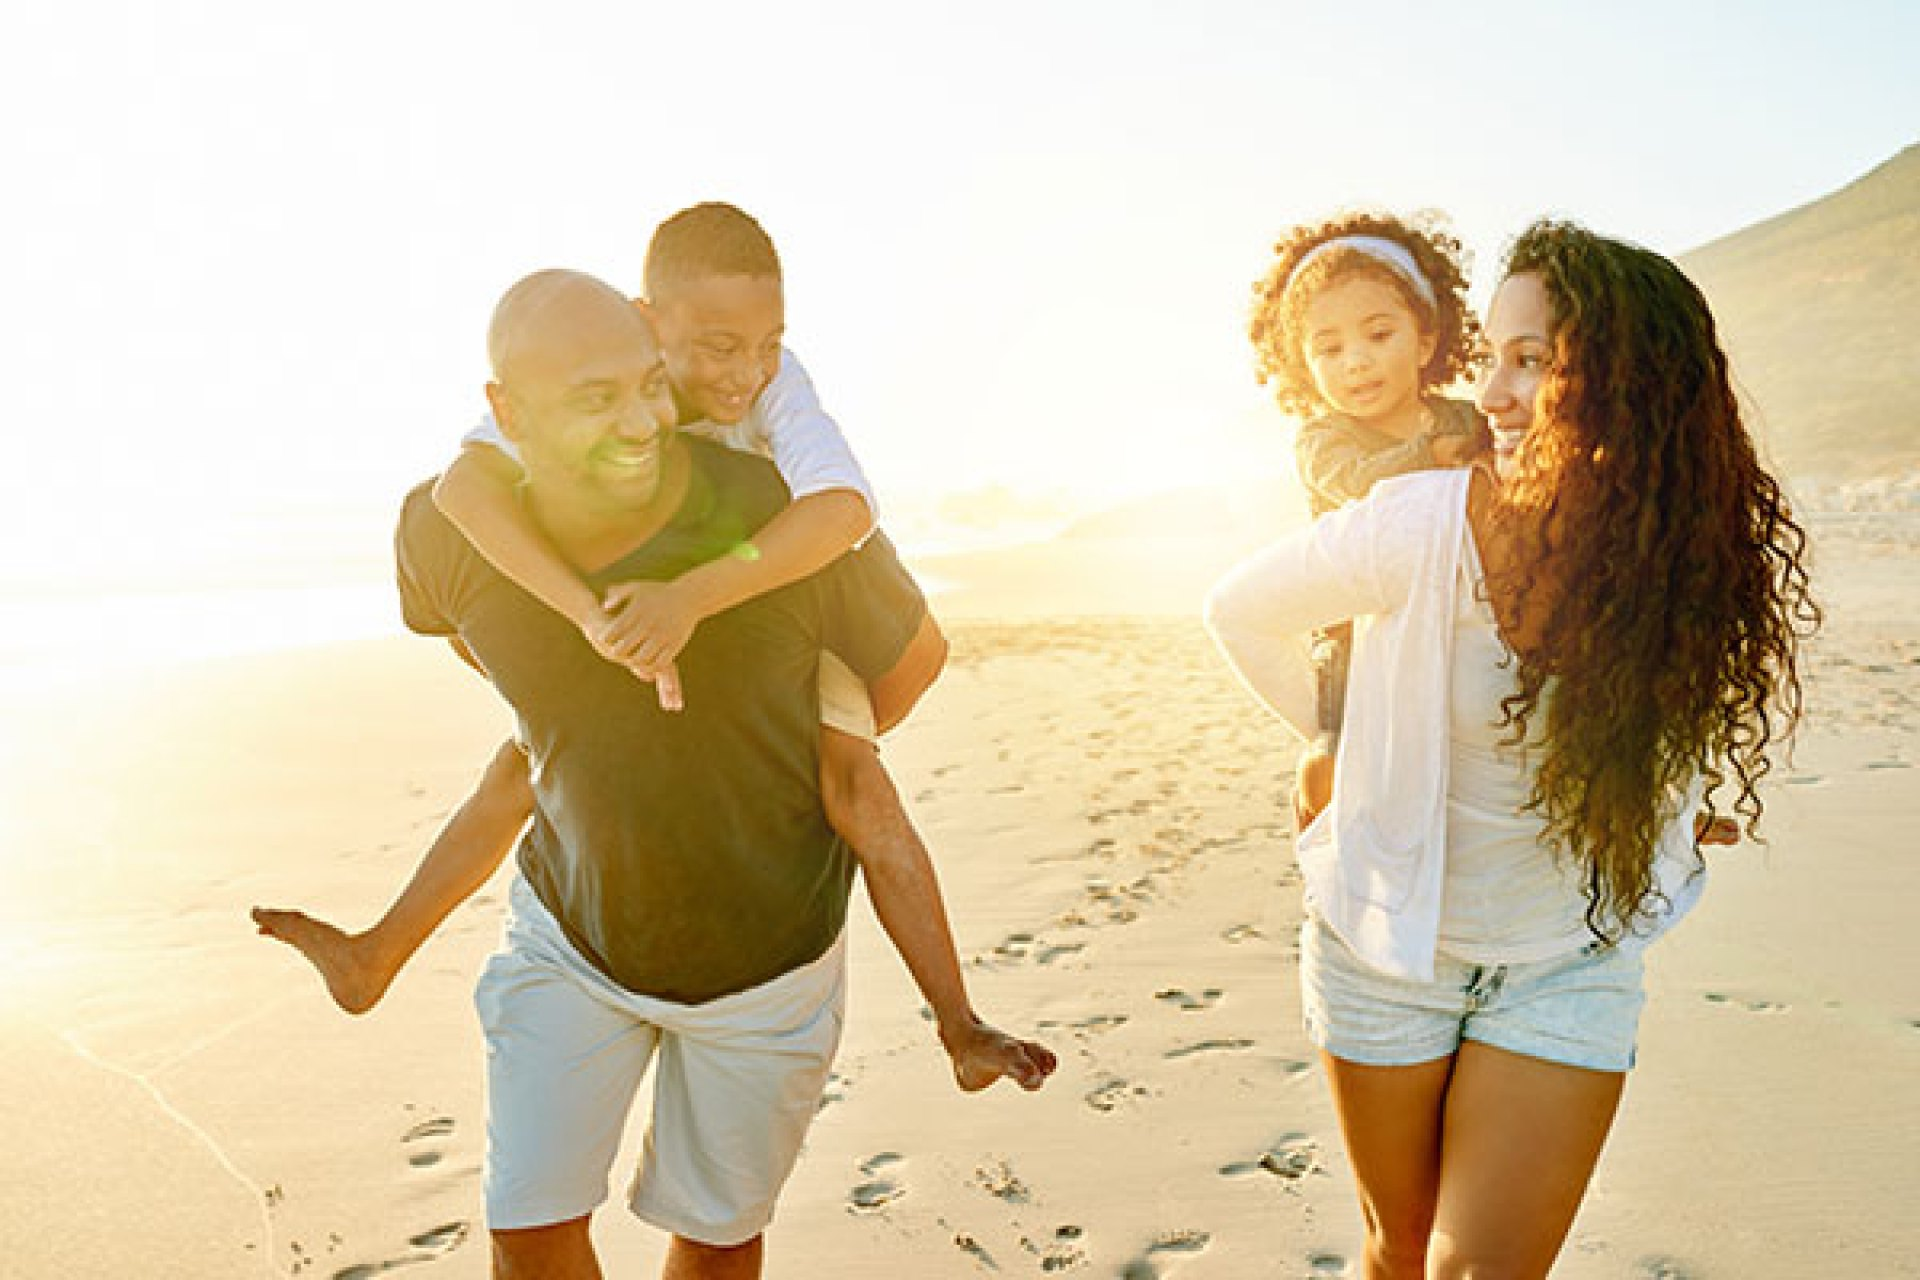 A family playing on the beach.